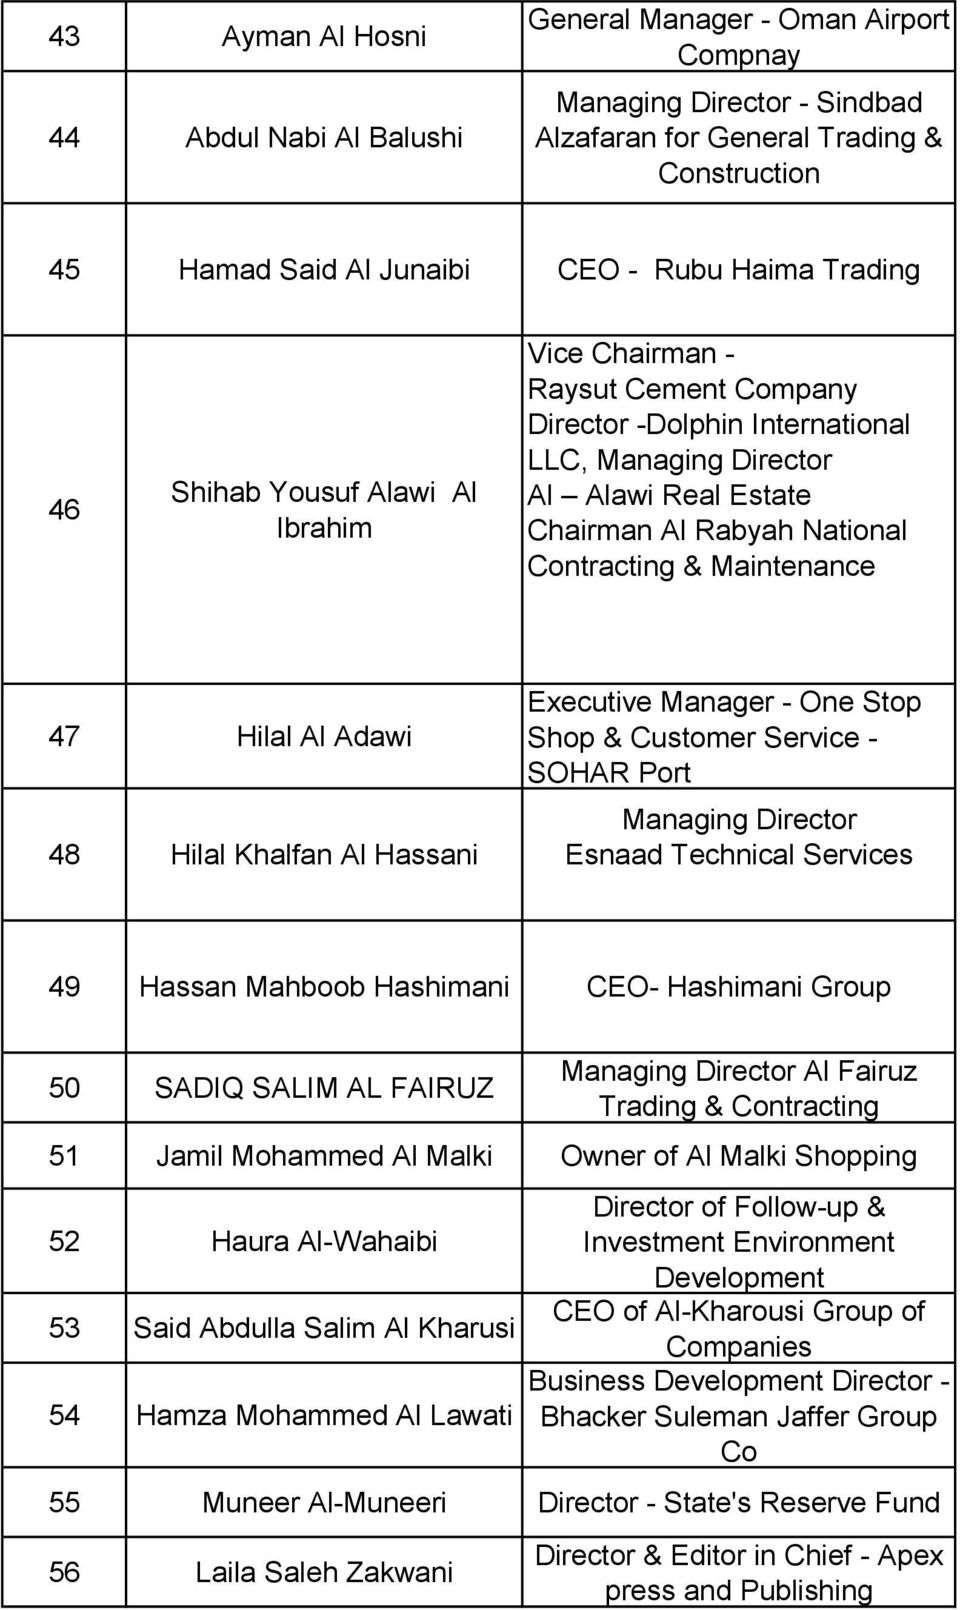 Maintenance 47 Hilal Al Adawi 48 Hilal Khalfan Al Hassani Executive Manager - One Stop Shop & Customer Service - SOHAR Port Managing Director Esnaad Technical Services 49 Hassan Mahboob Hashimani